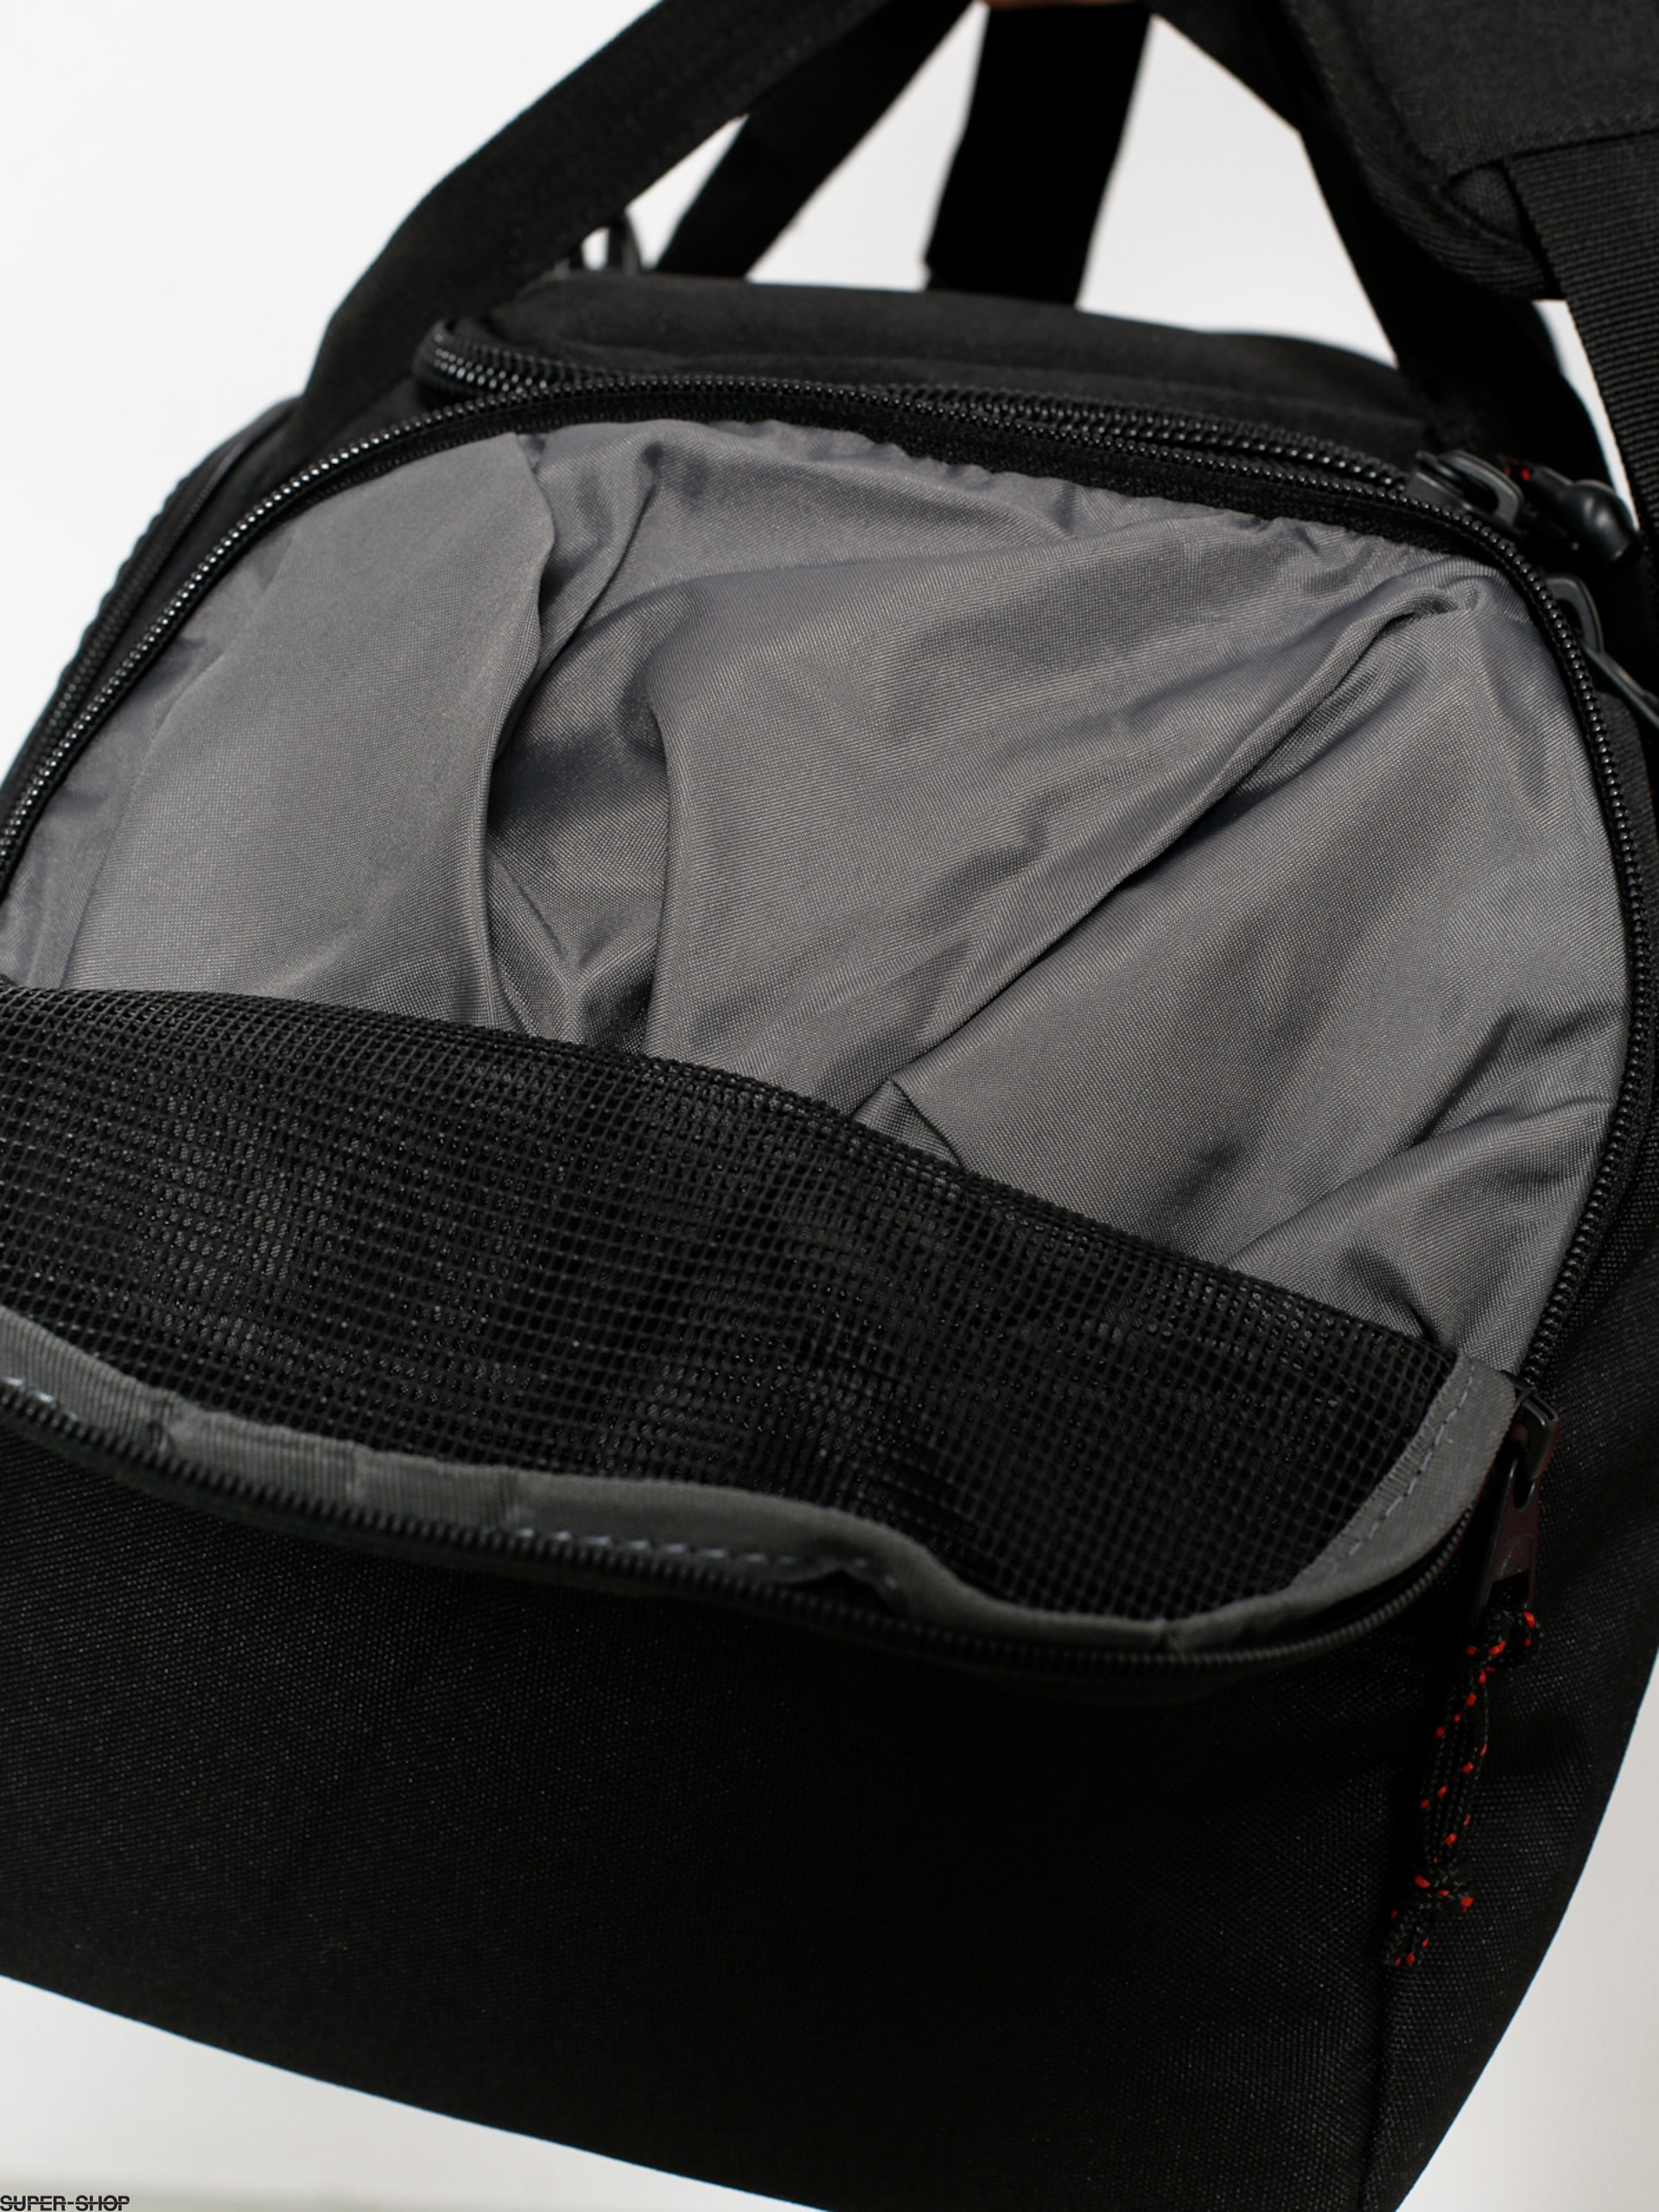 Bag Md 0true Boothaus Tasche 2 Black Burton drChsxtQ